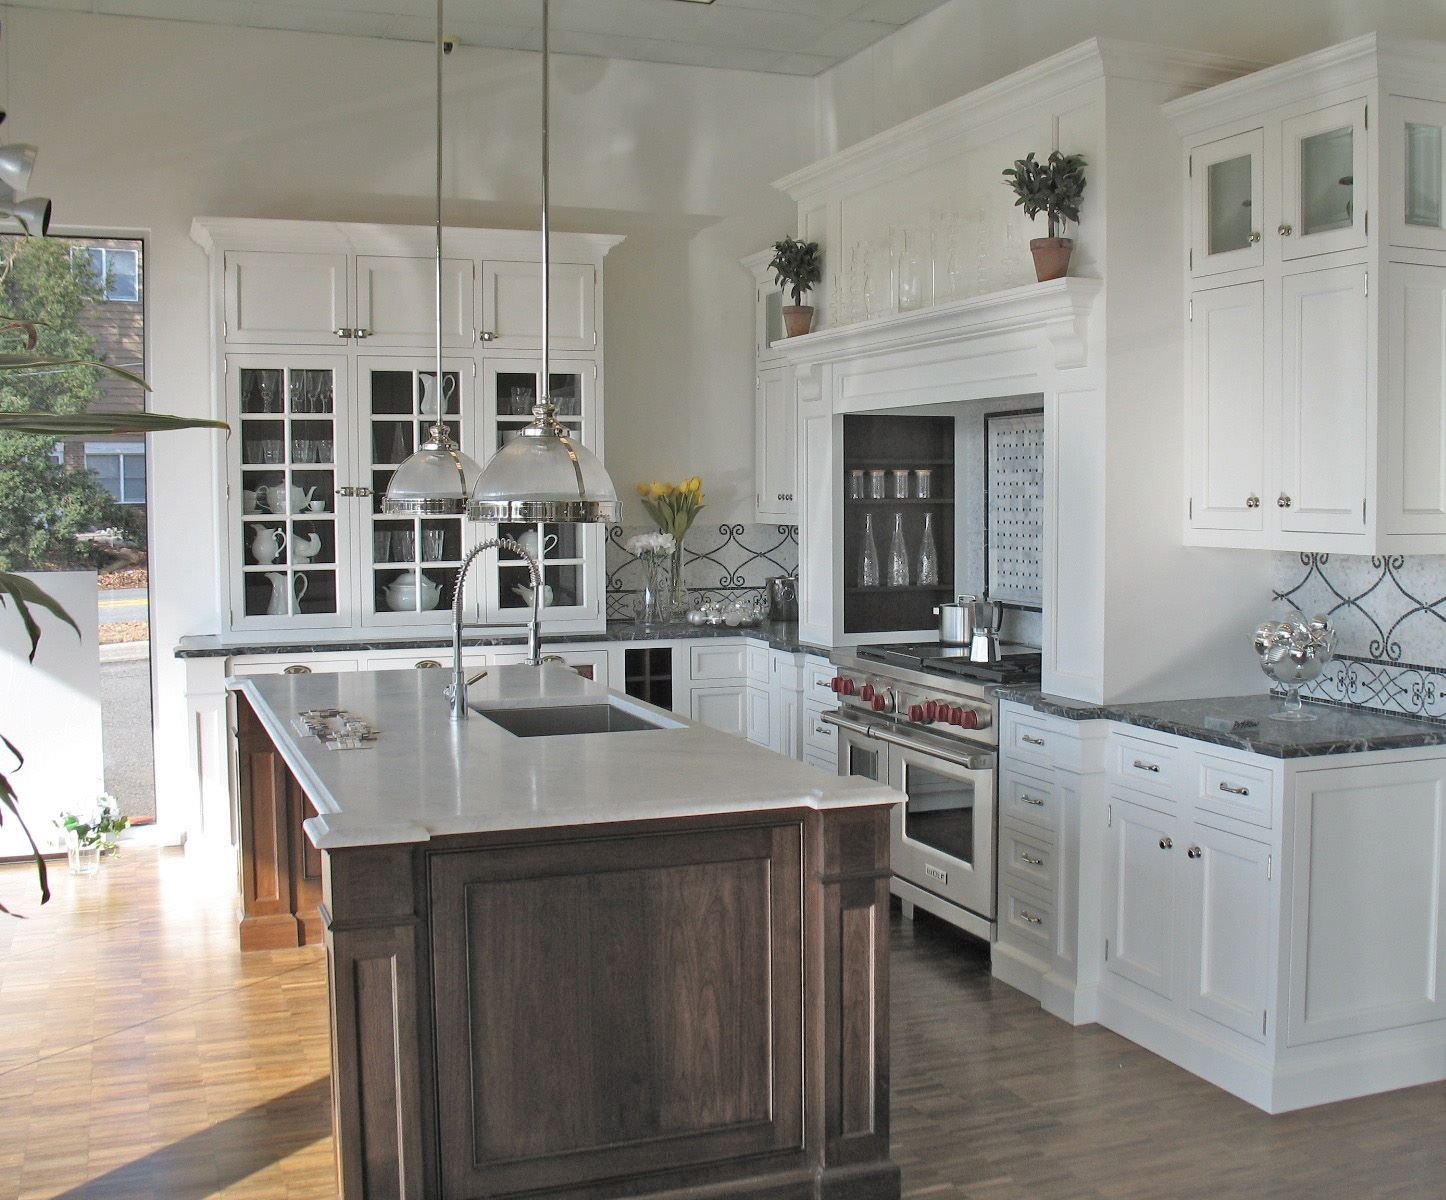 Modern traditional kitchen cabinets design ideas for Traditional kitchen